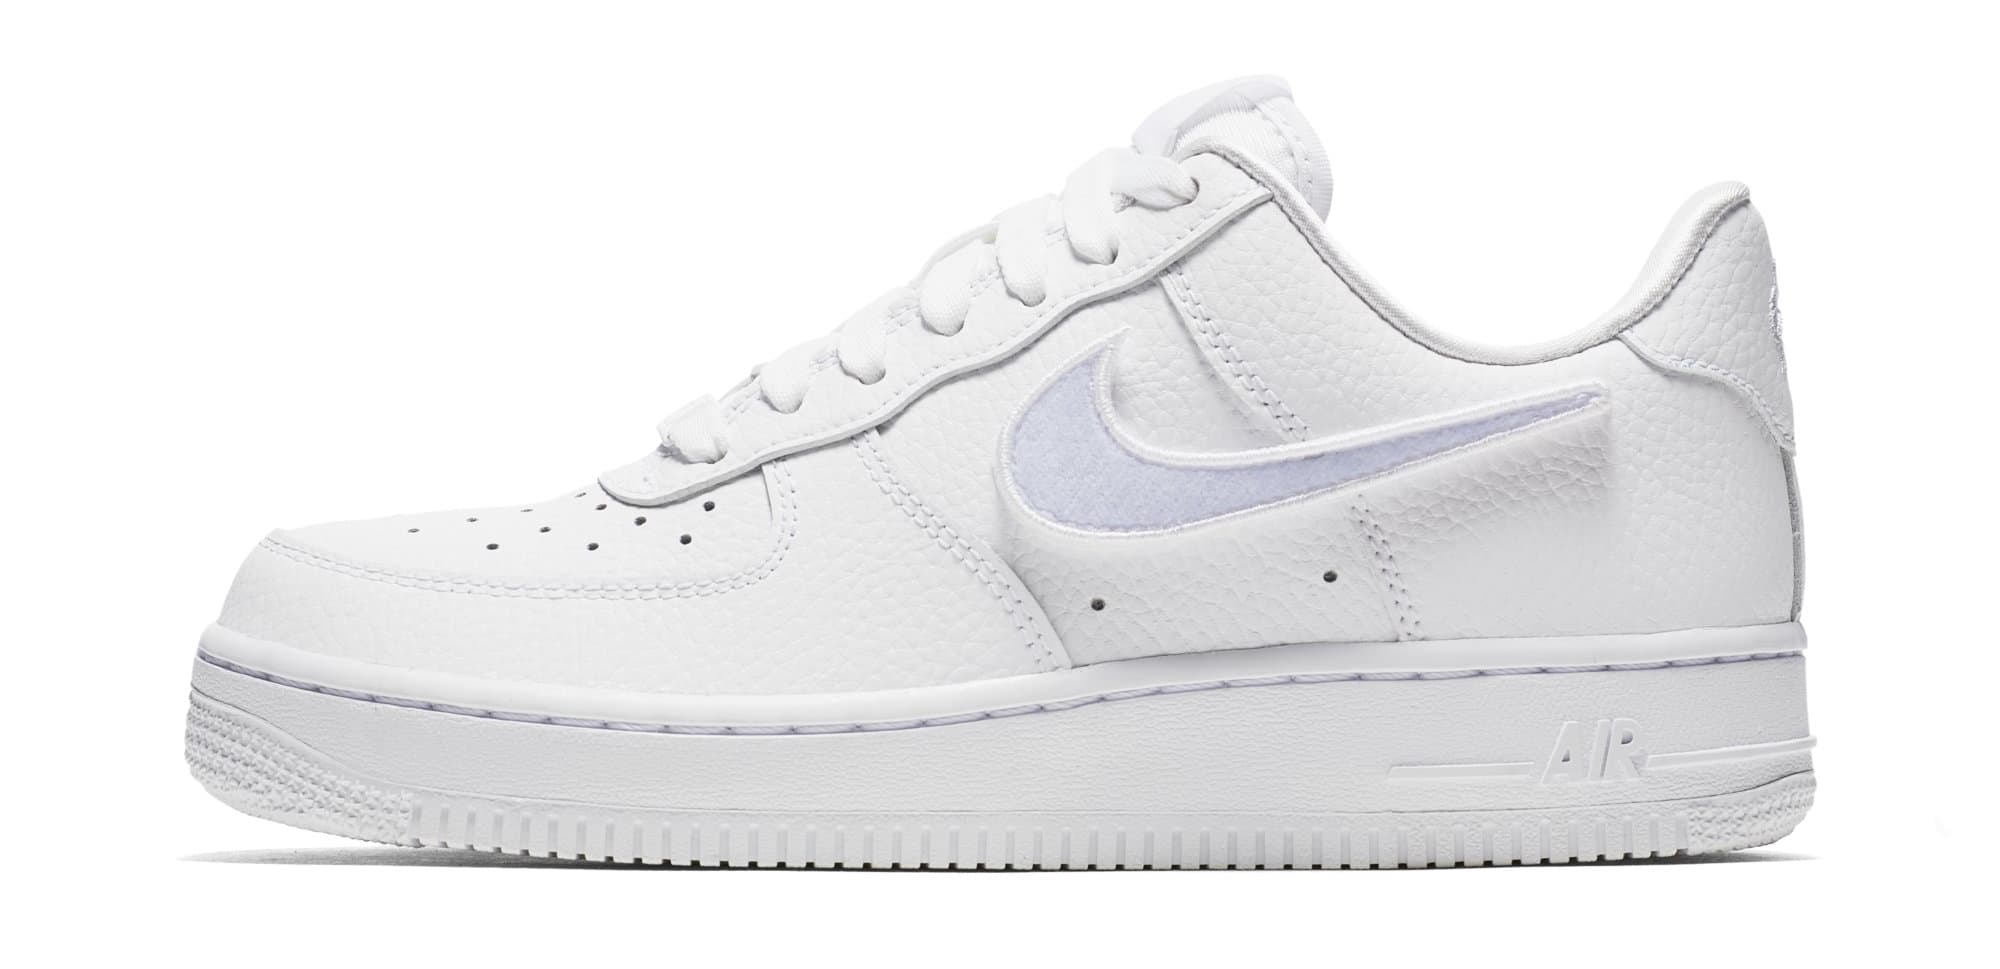 WMNS Nike Air Force 1 100 AQ3621 111 Release Date | Sole